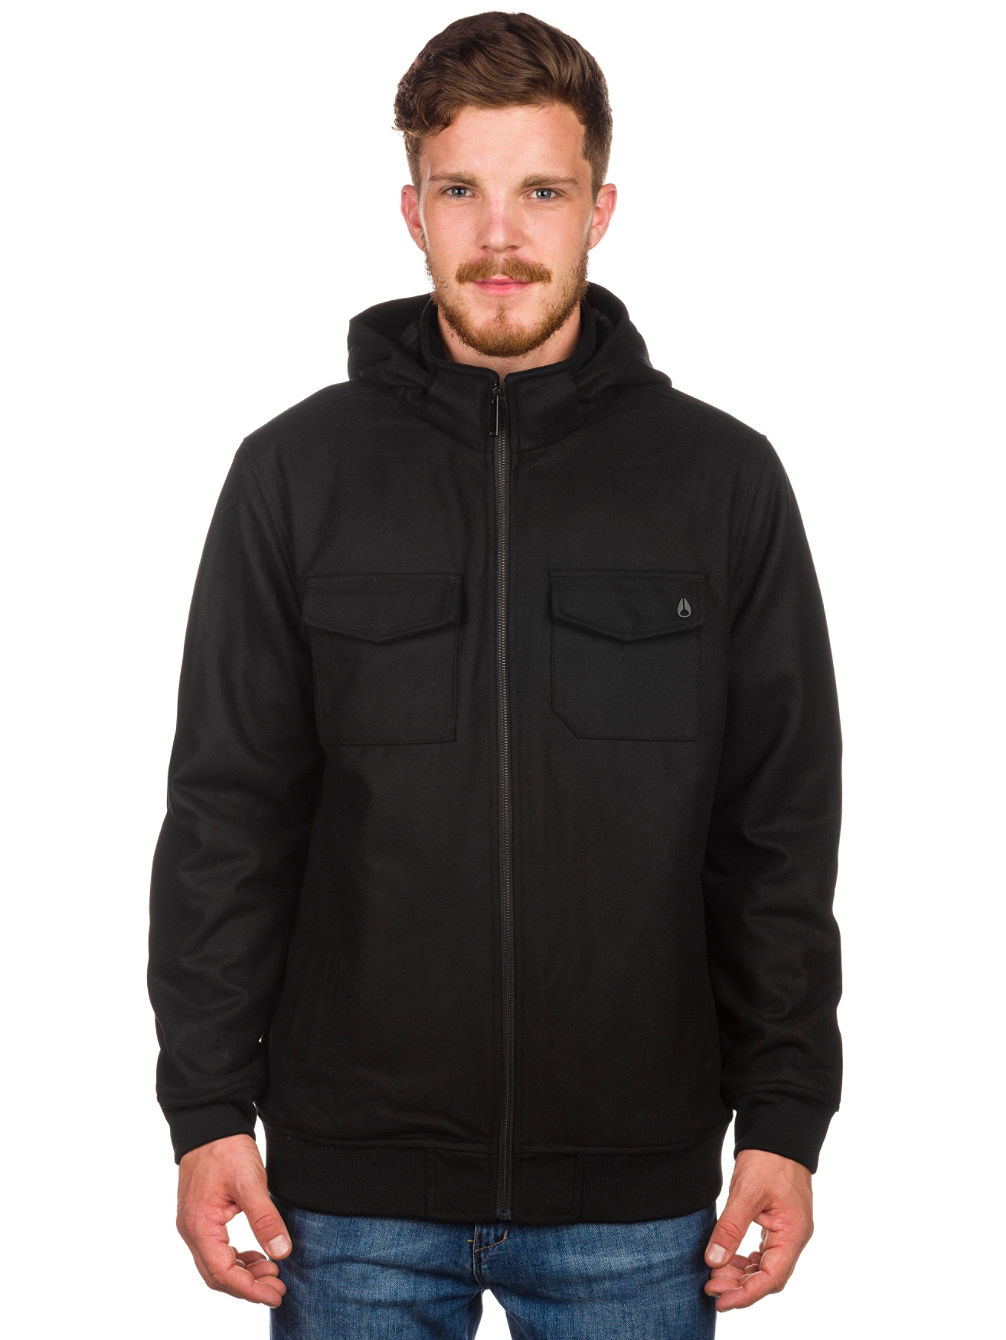 nixon-admiral-quilted-jacket